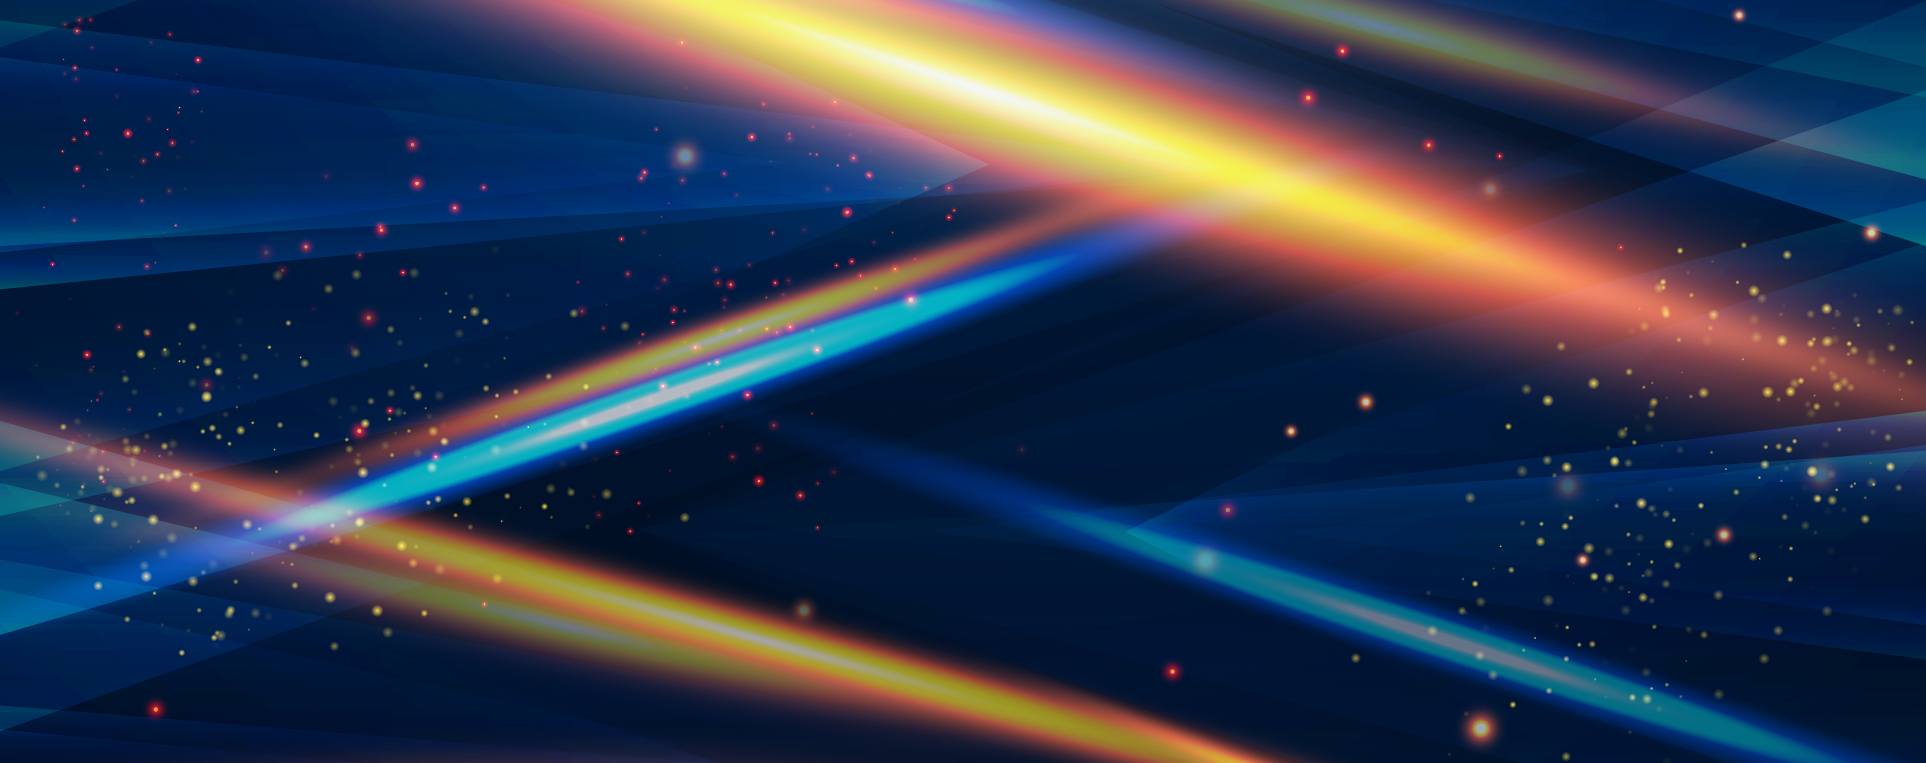 neon beam background  neon  beam  shock background image